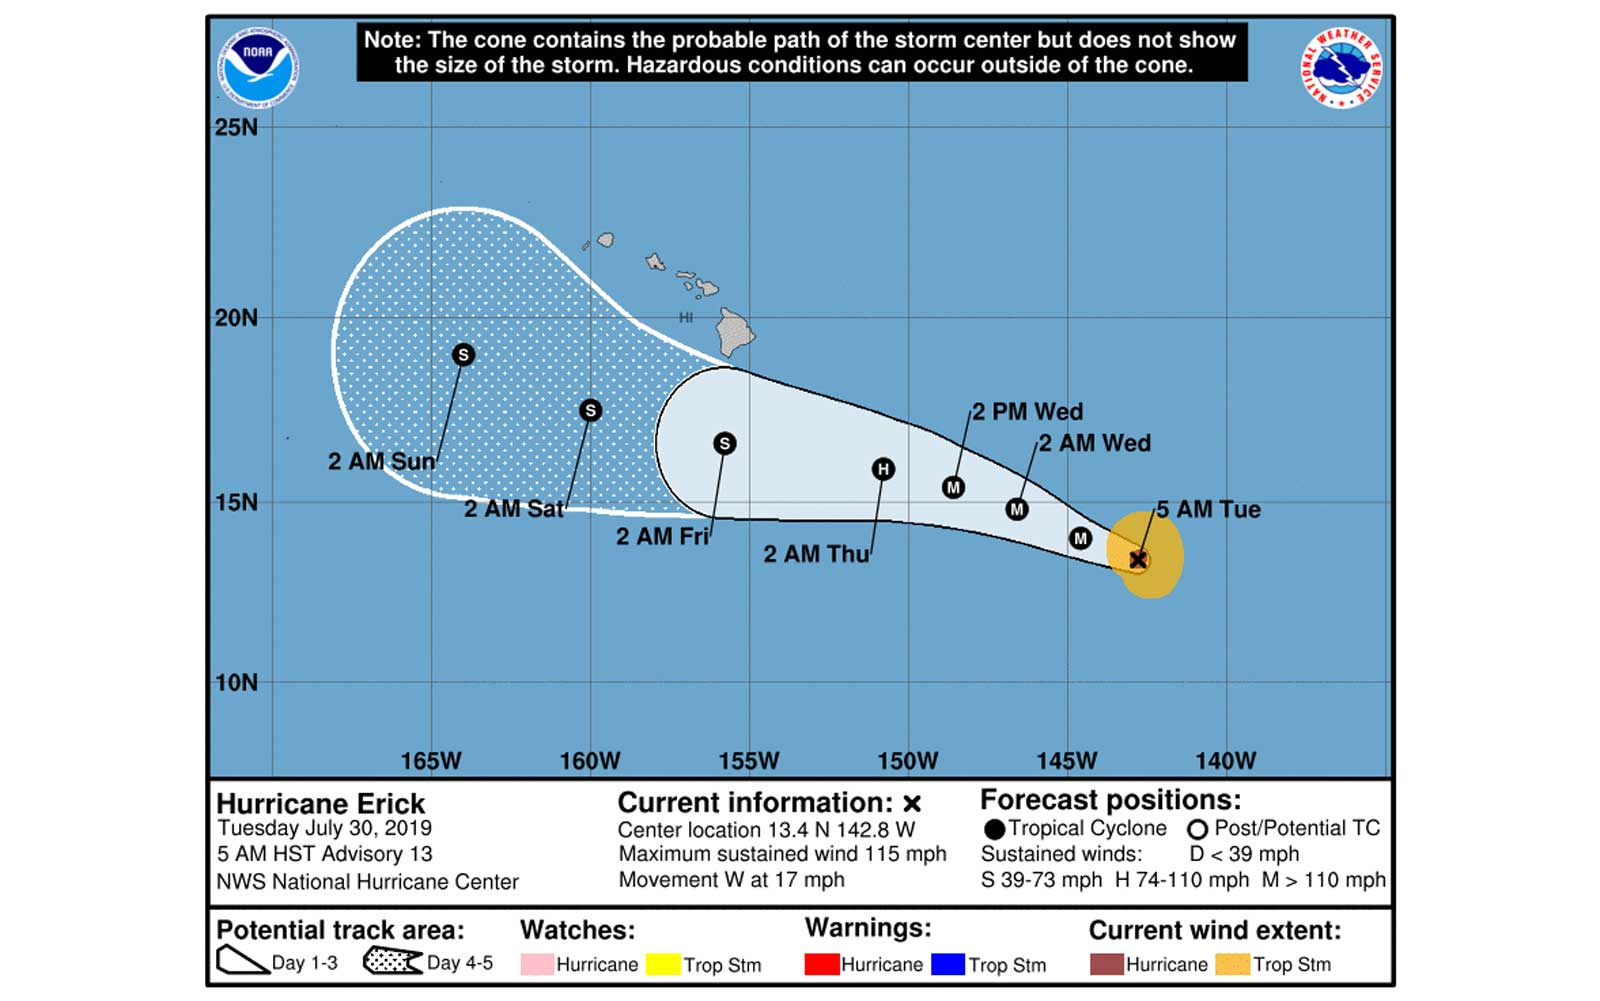 Hurricane Erick Hawaii Time Cone NOAA NHC NWS